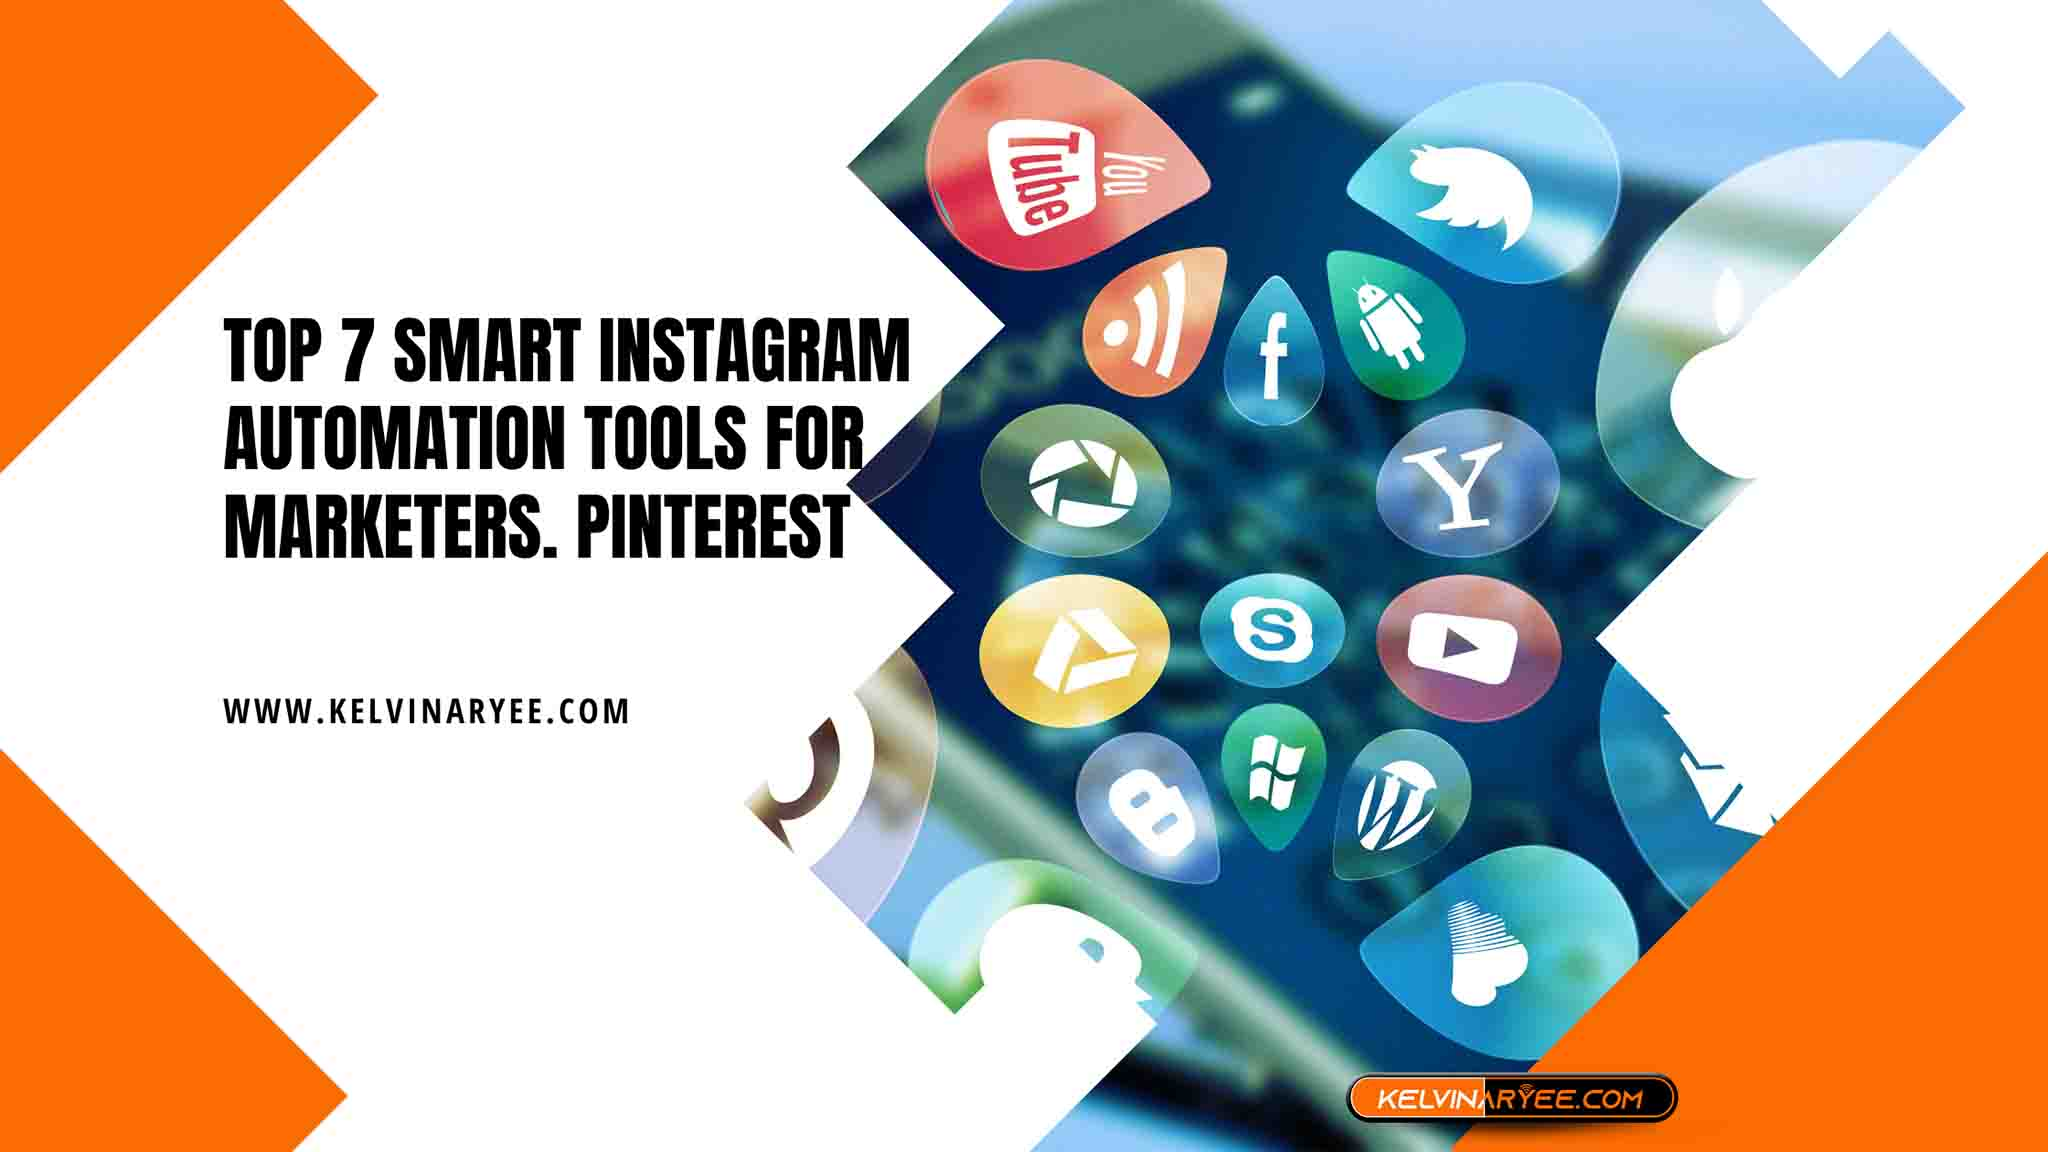 Top 7 Smart Instagram Automation Tools For Marketers